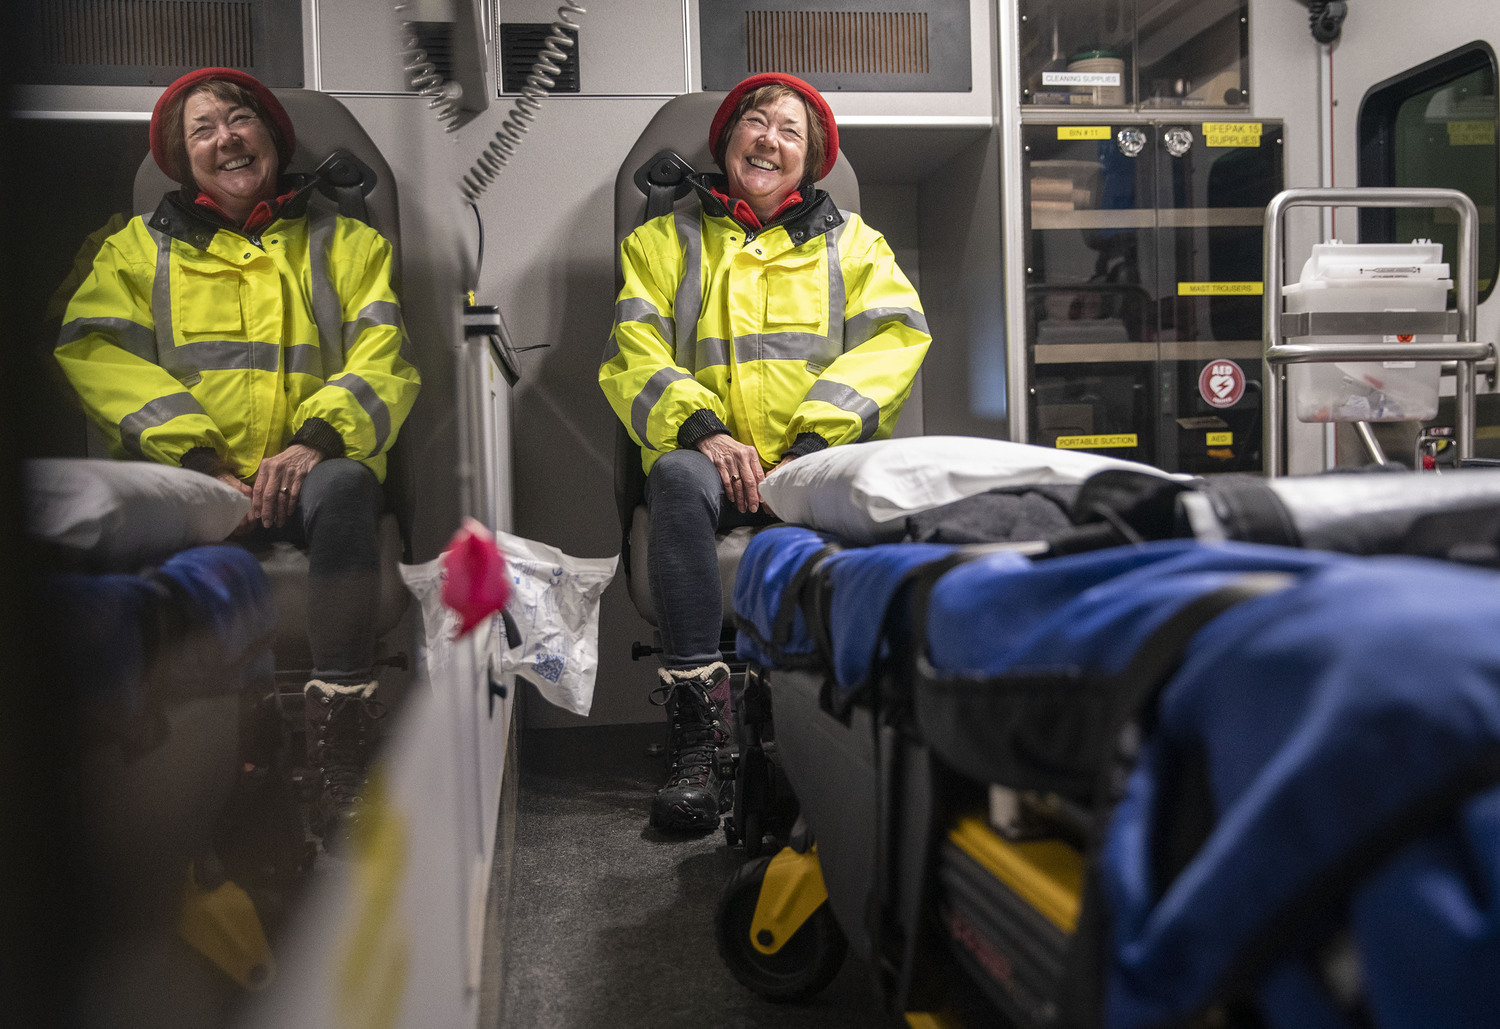 Laura Popkes became an EMT over time with the volunteer fire department. She and her husband, Daryl, started a new life on the Gunflint Trail in 1998.